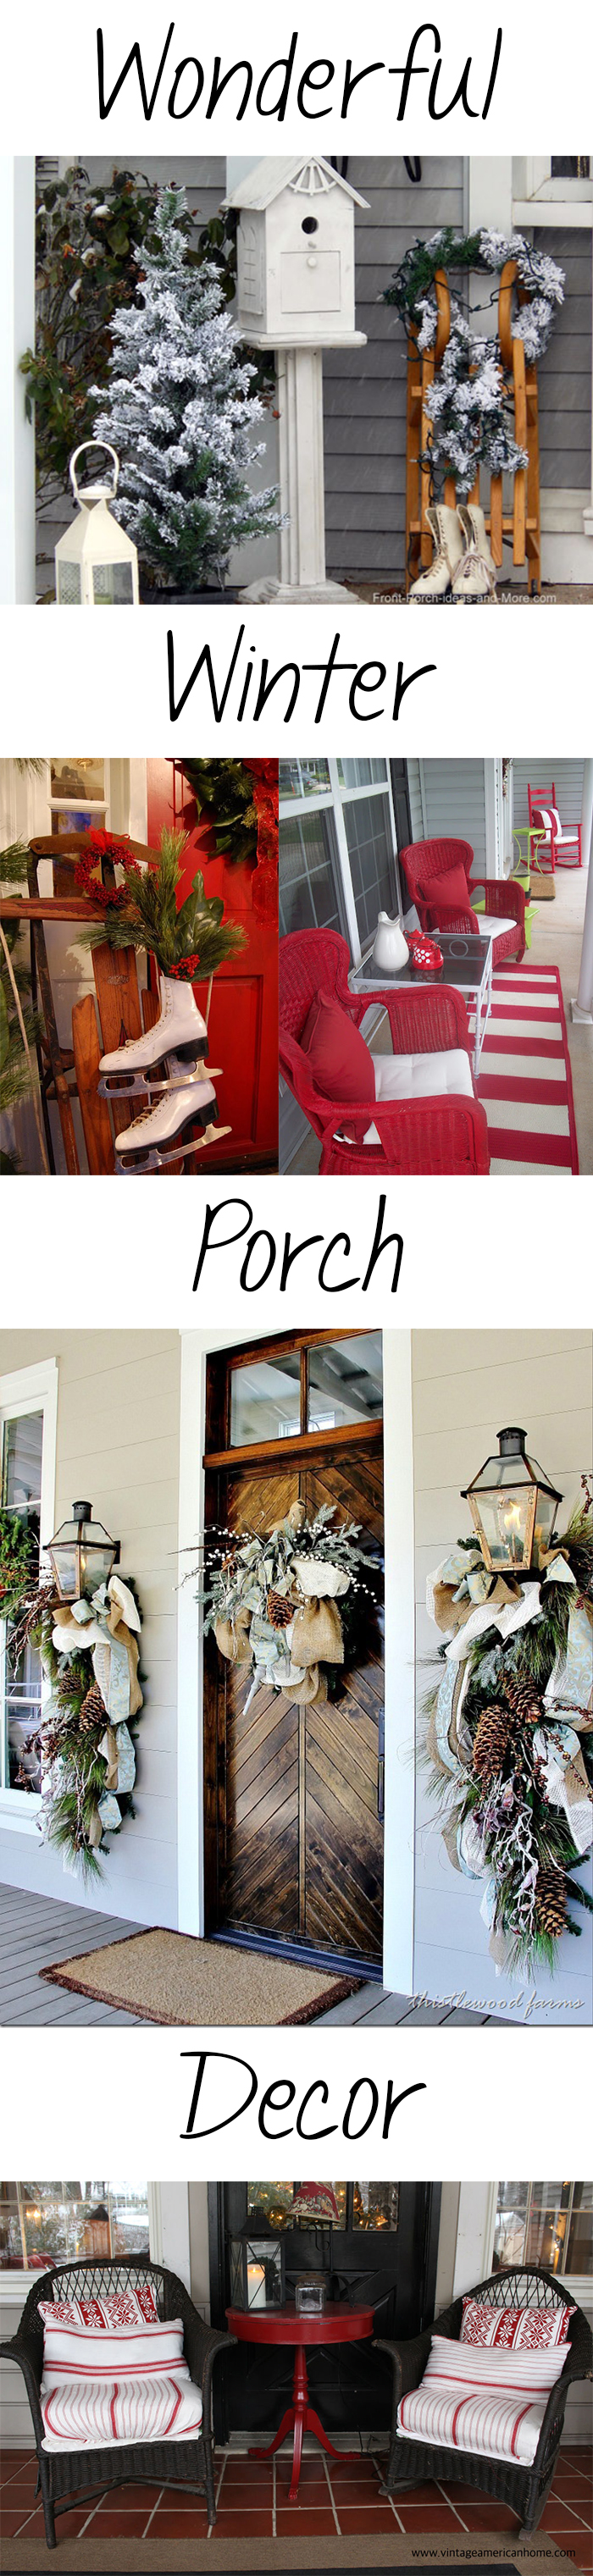 wonderful winter porch decor